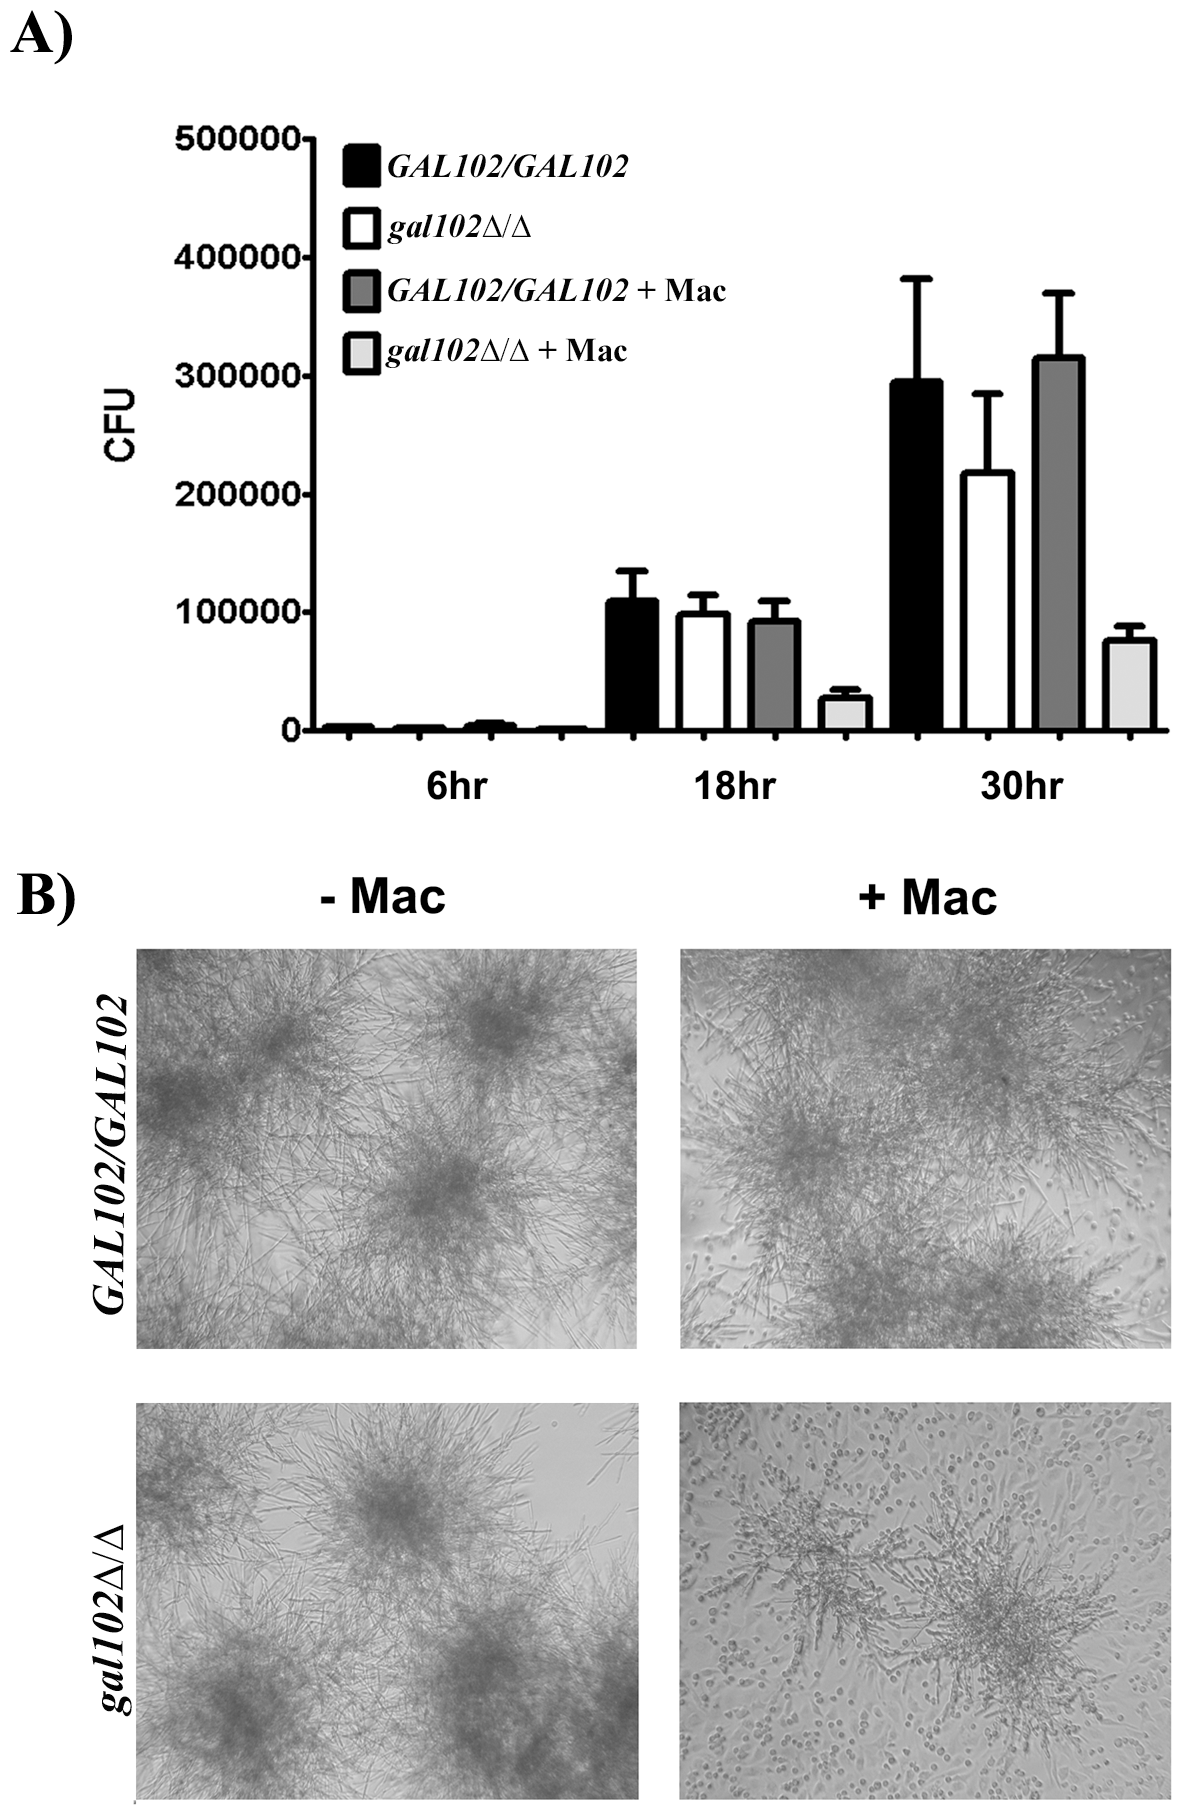 Macrophages suppress the growth of <i>gal102Δ/Δ in vitro.</i>